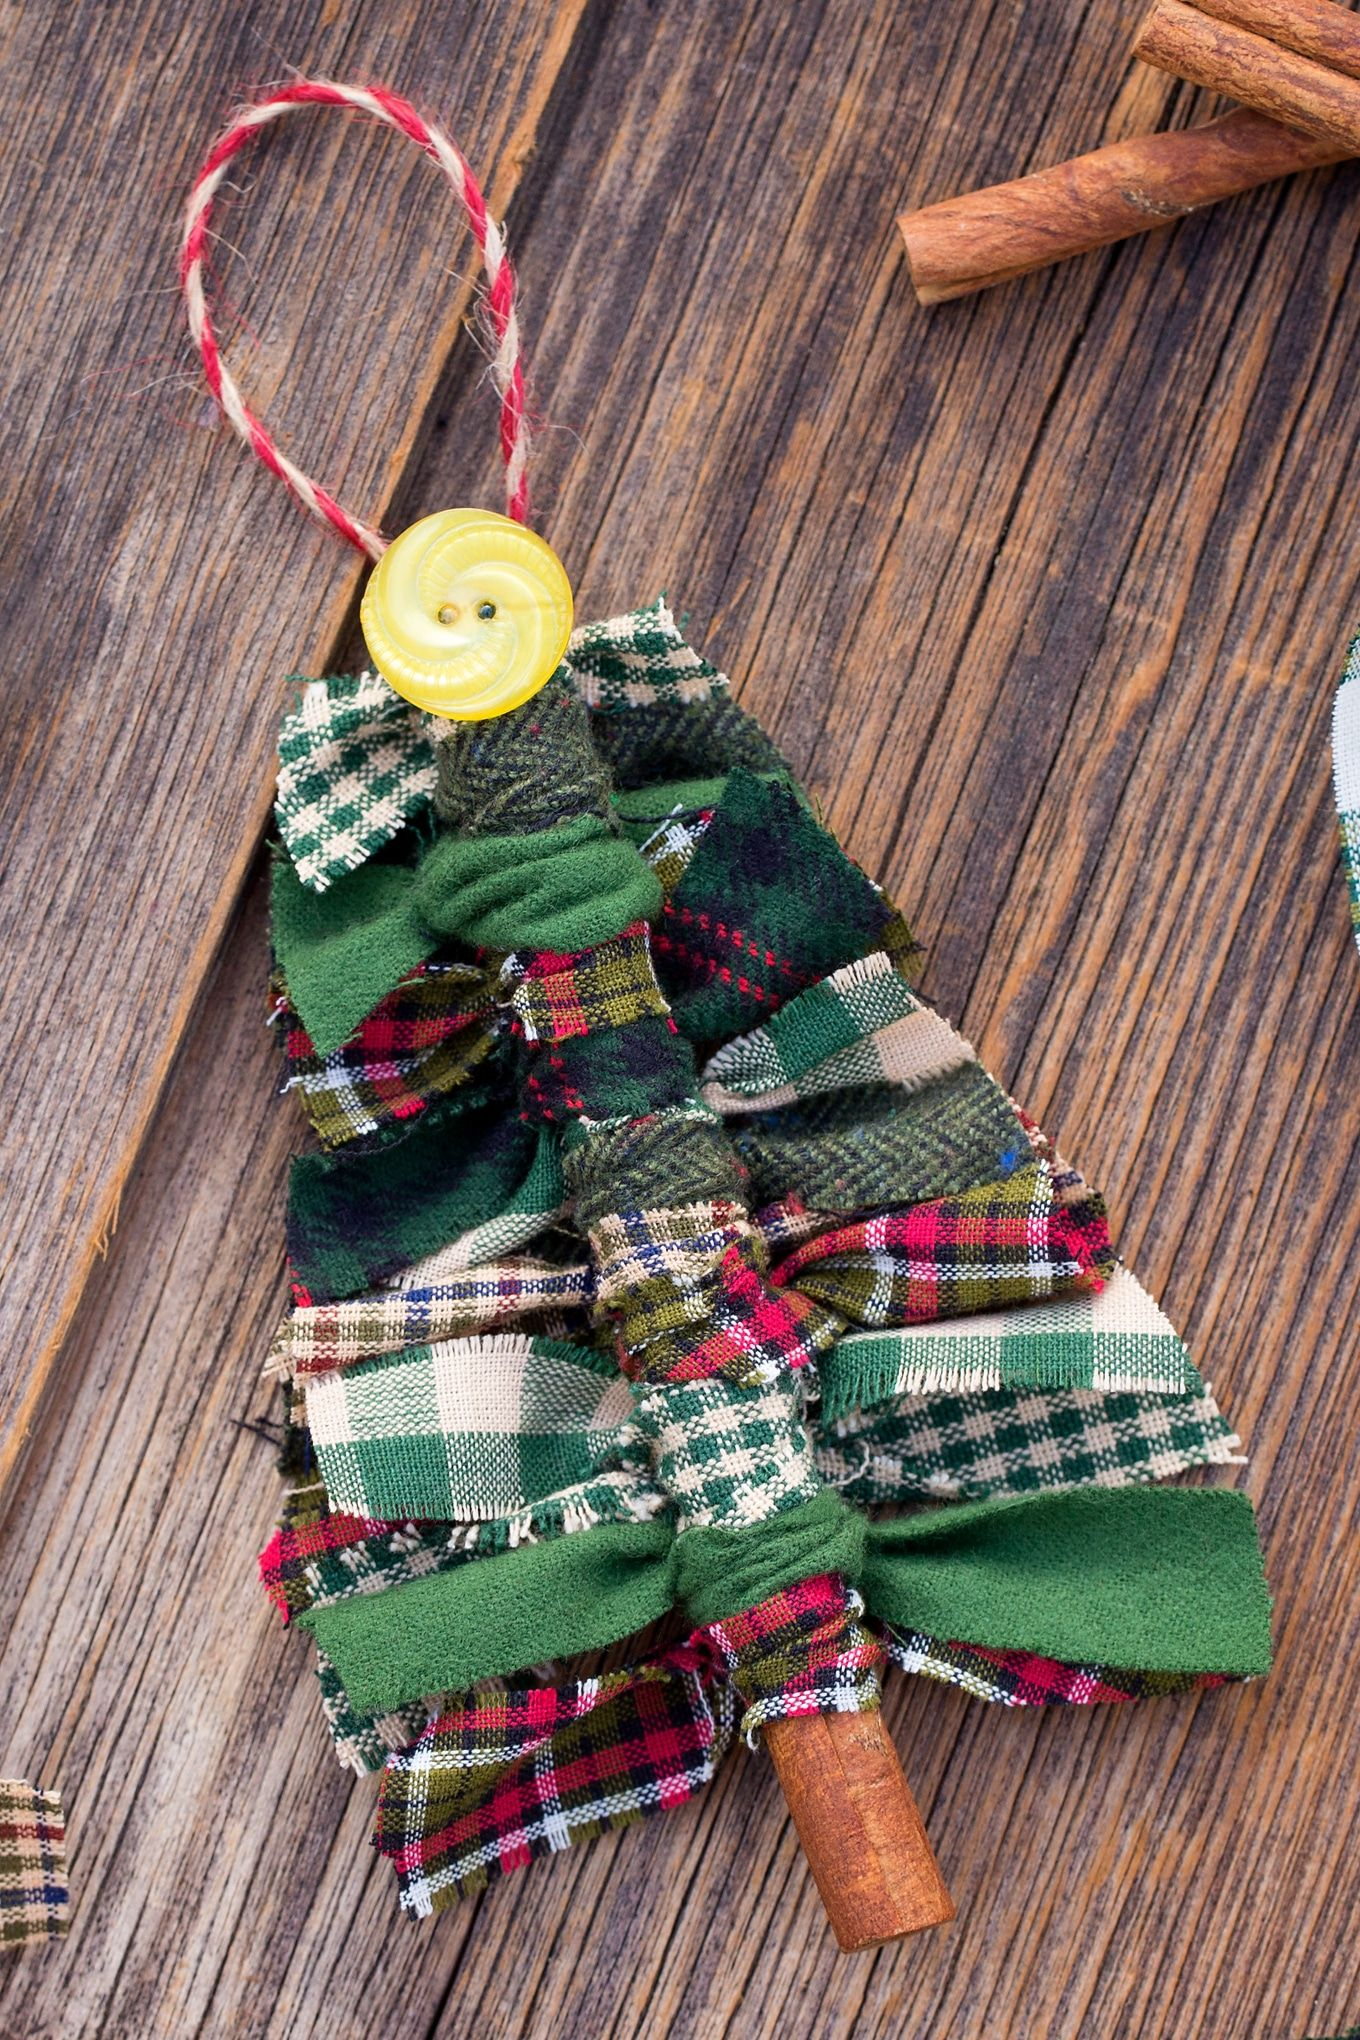 How To Make Primitive Scrap Fabric Tree Ornaments Recipe Christmas Tree Crafts Easy Christmas Ornaments Christmas Ornament Crafts